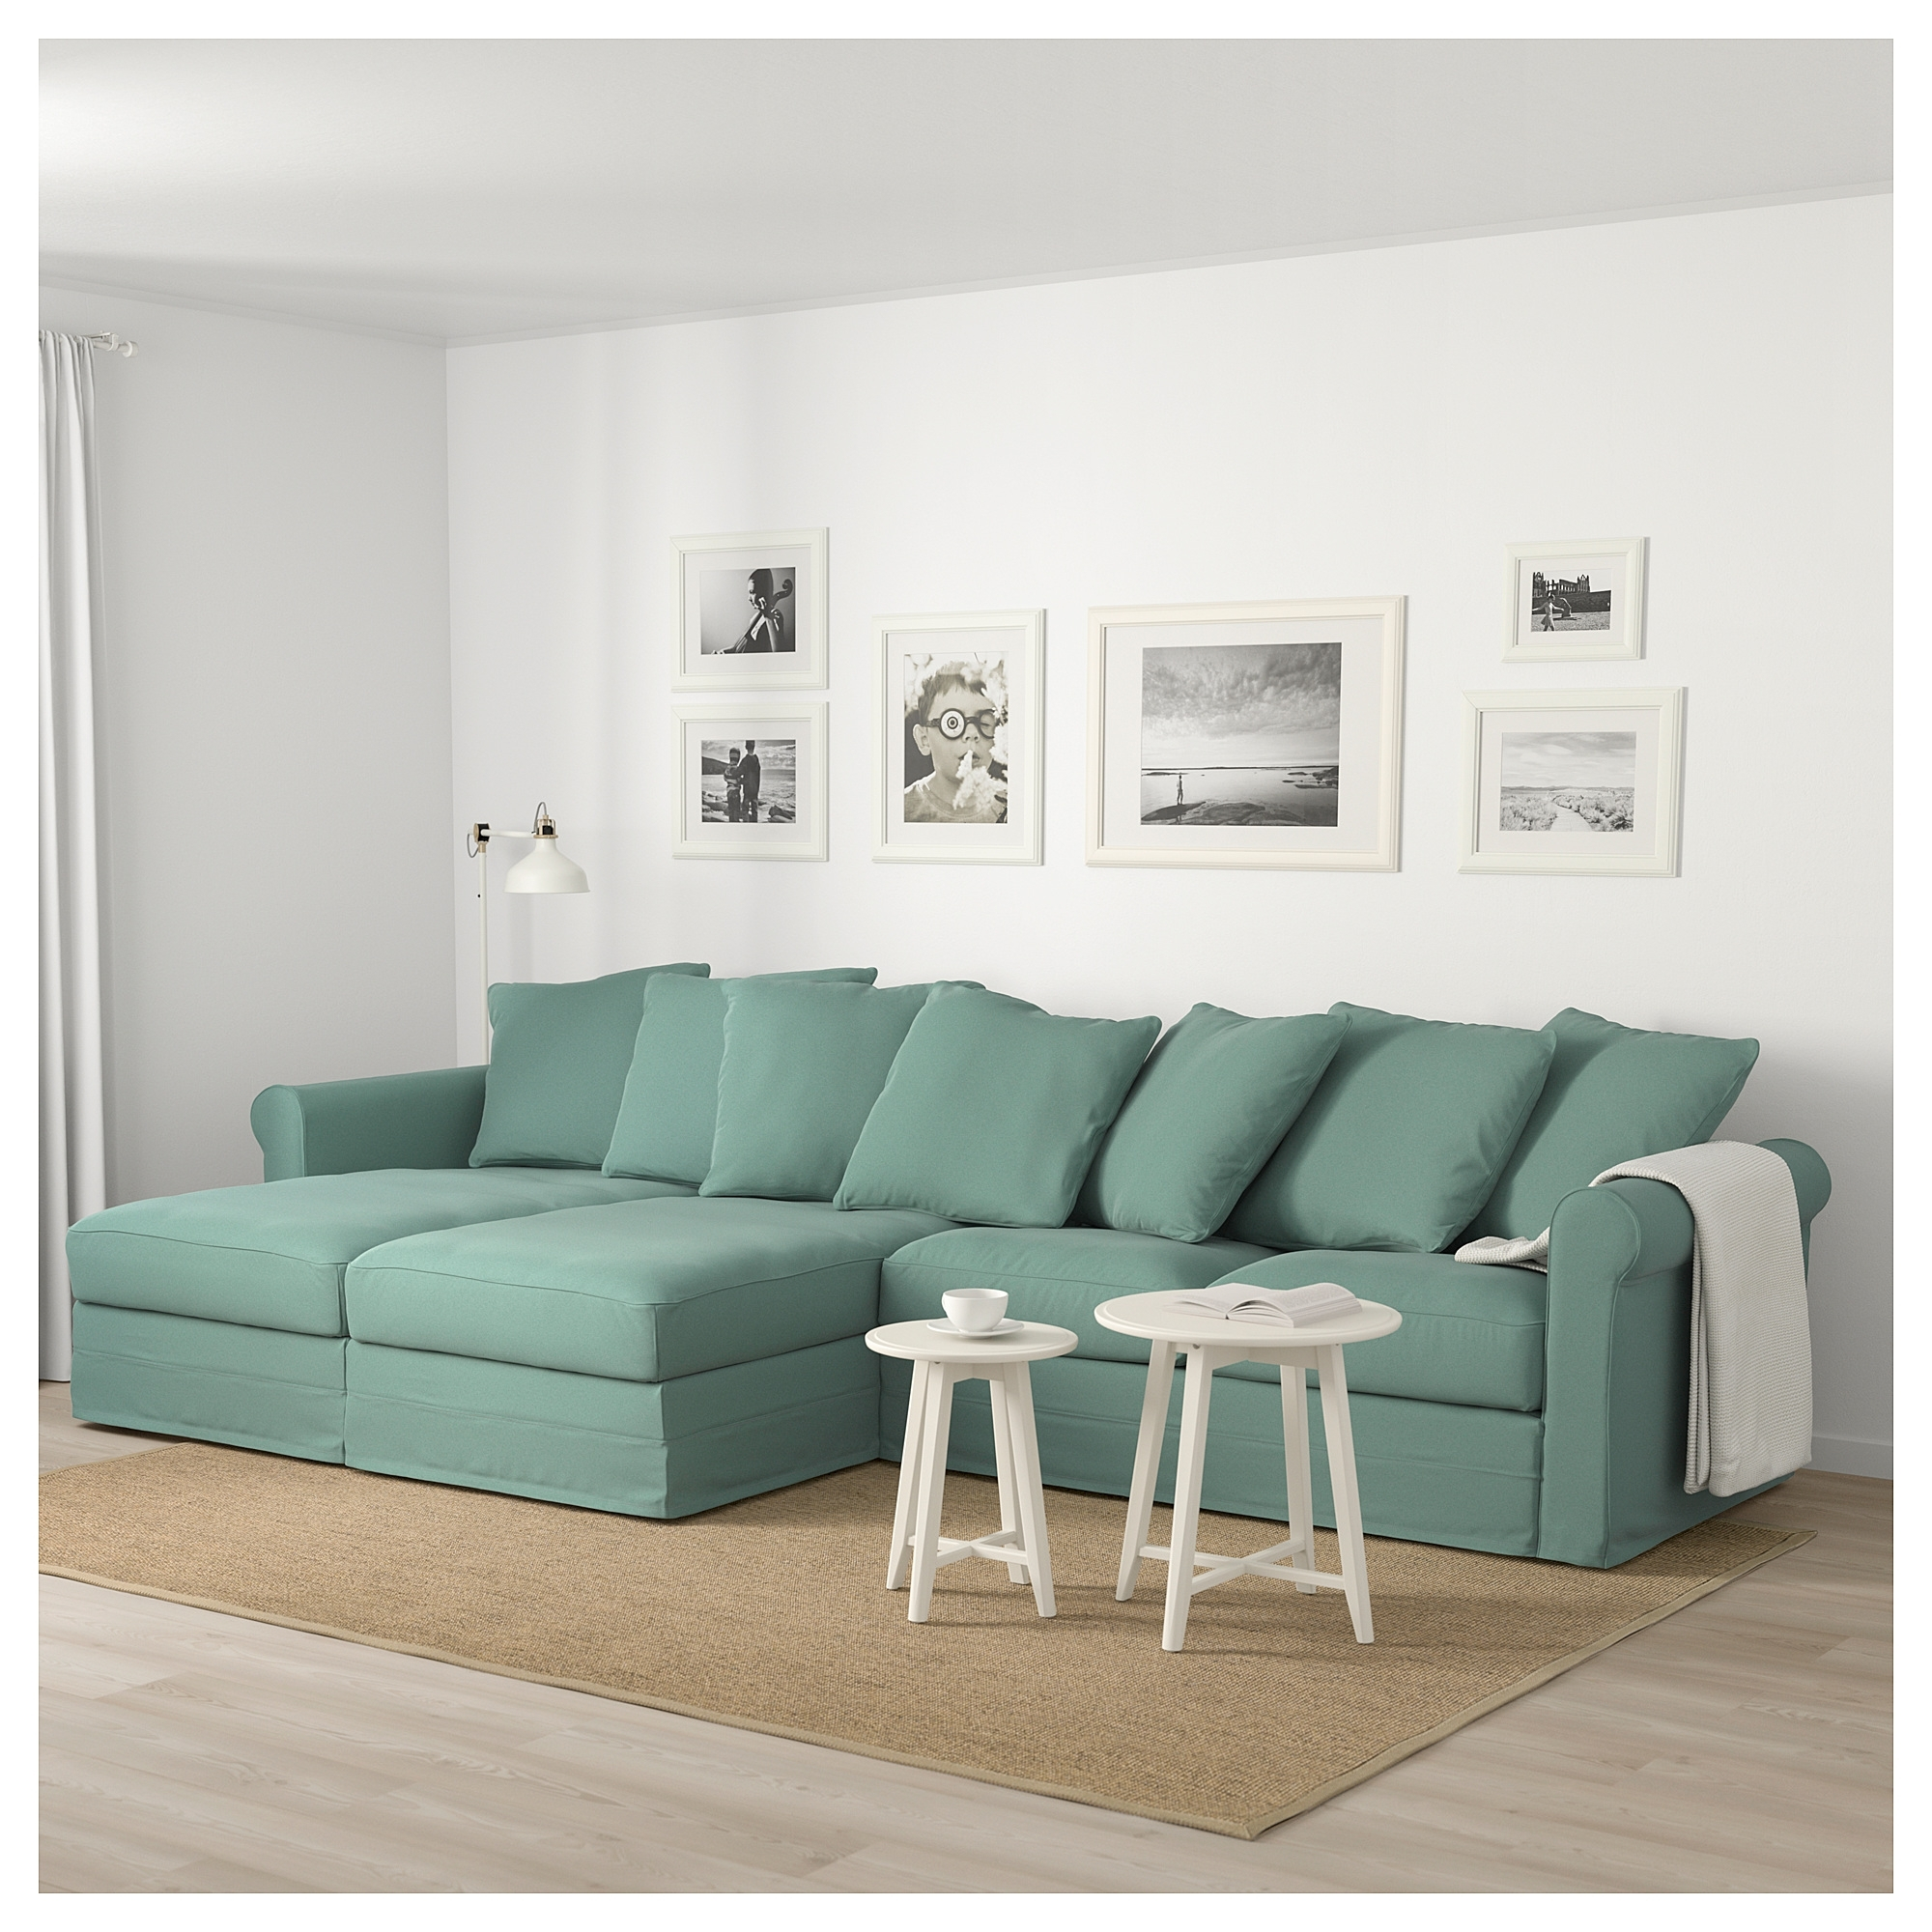 Ikea – Grönlid Sectional, 4 Seat With Chaise, Ljungen Light Green Inside London Optical Reversible Sofa Chaise Sectionals (View 6 of 25)